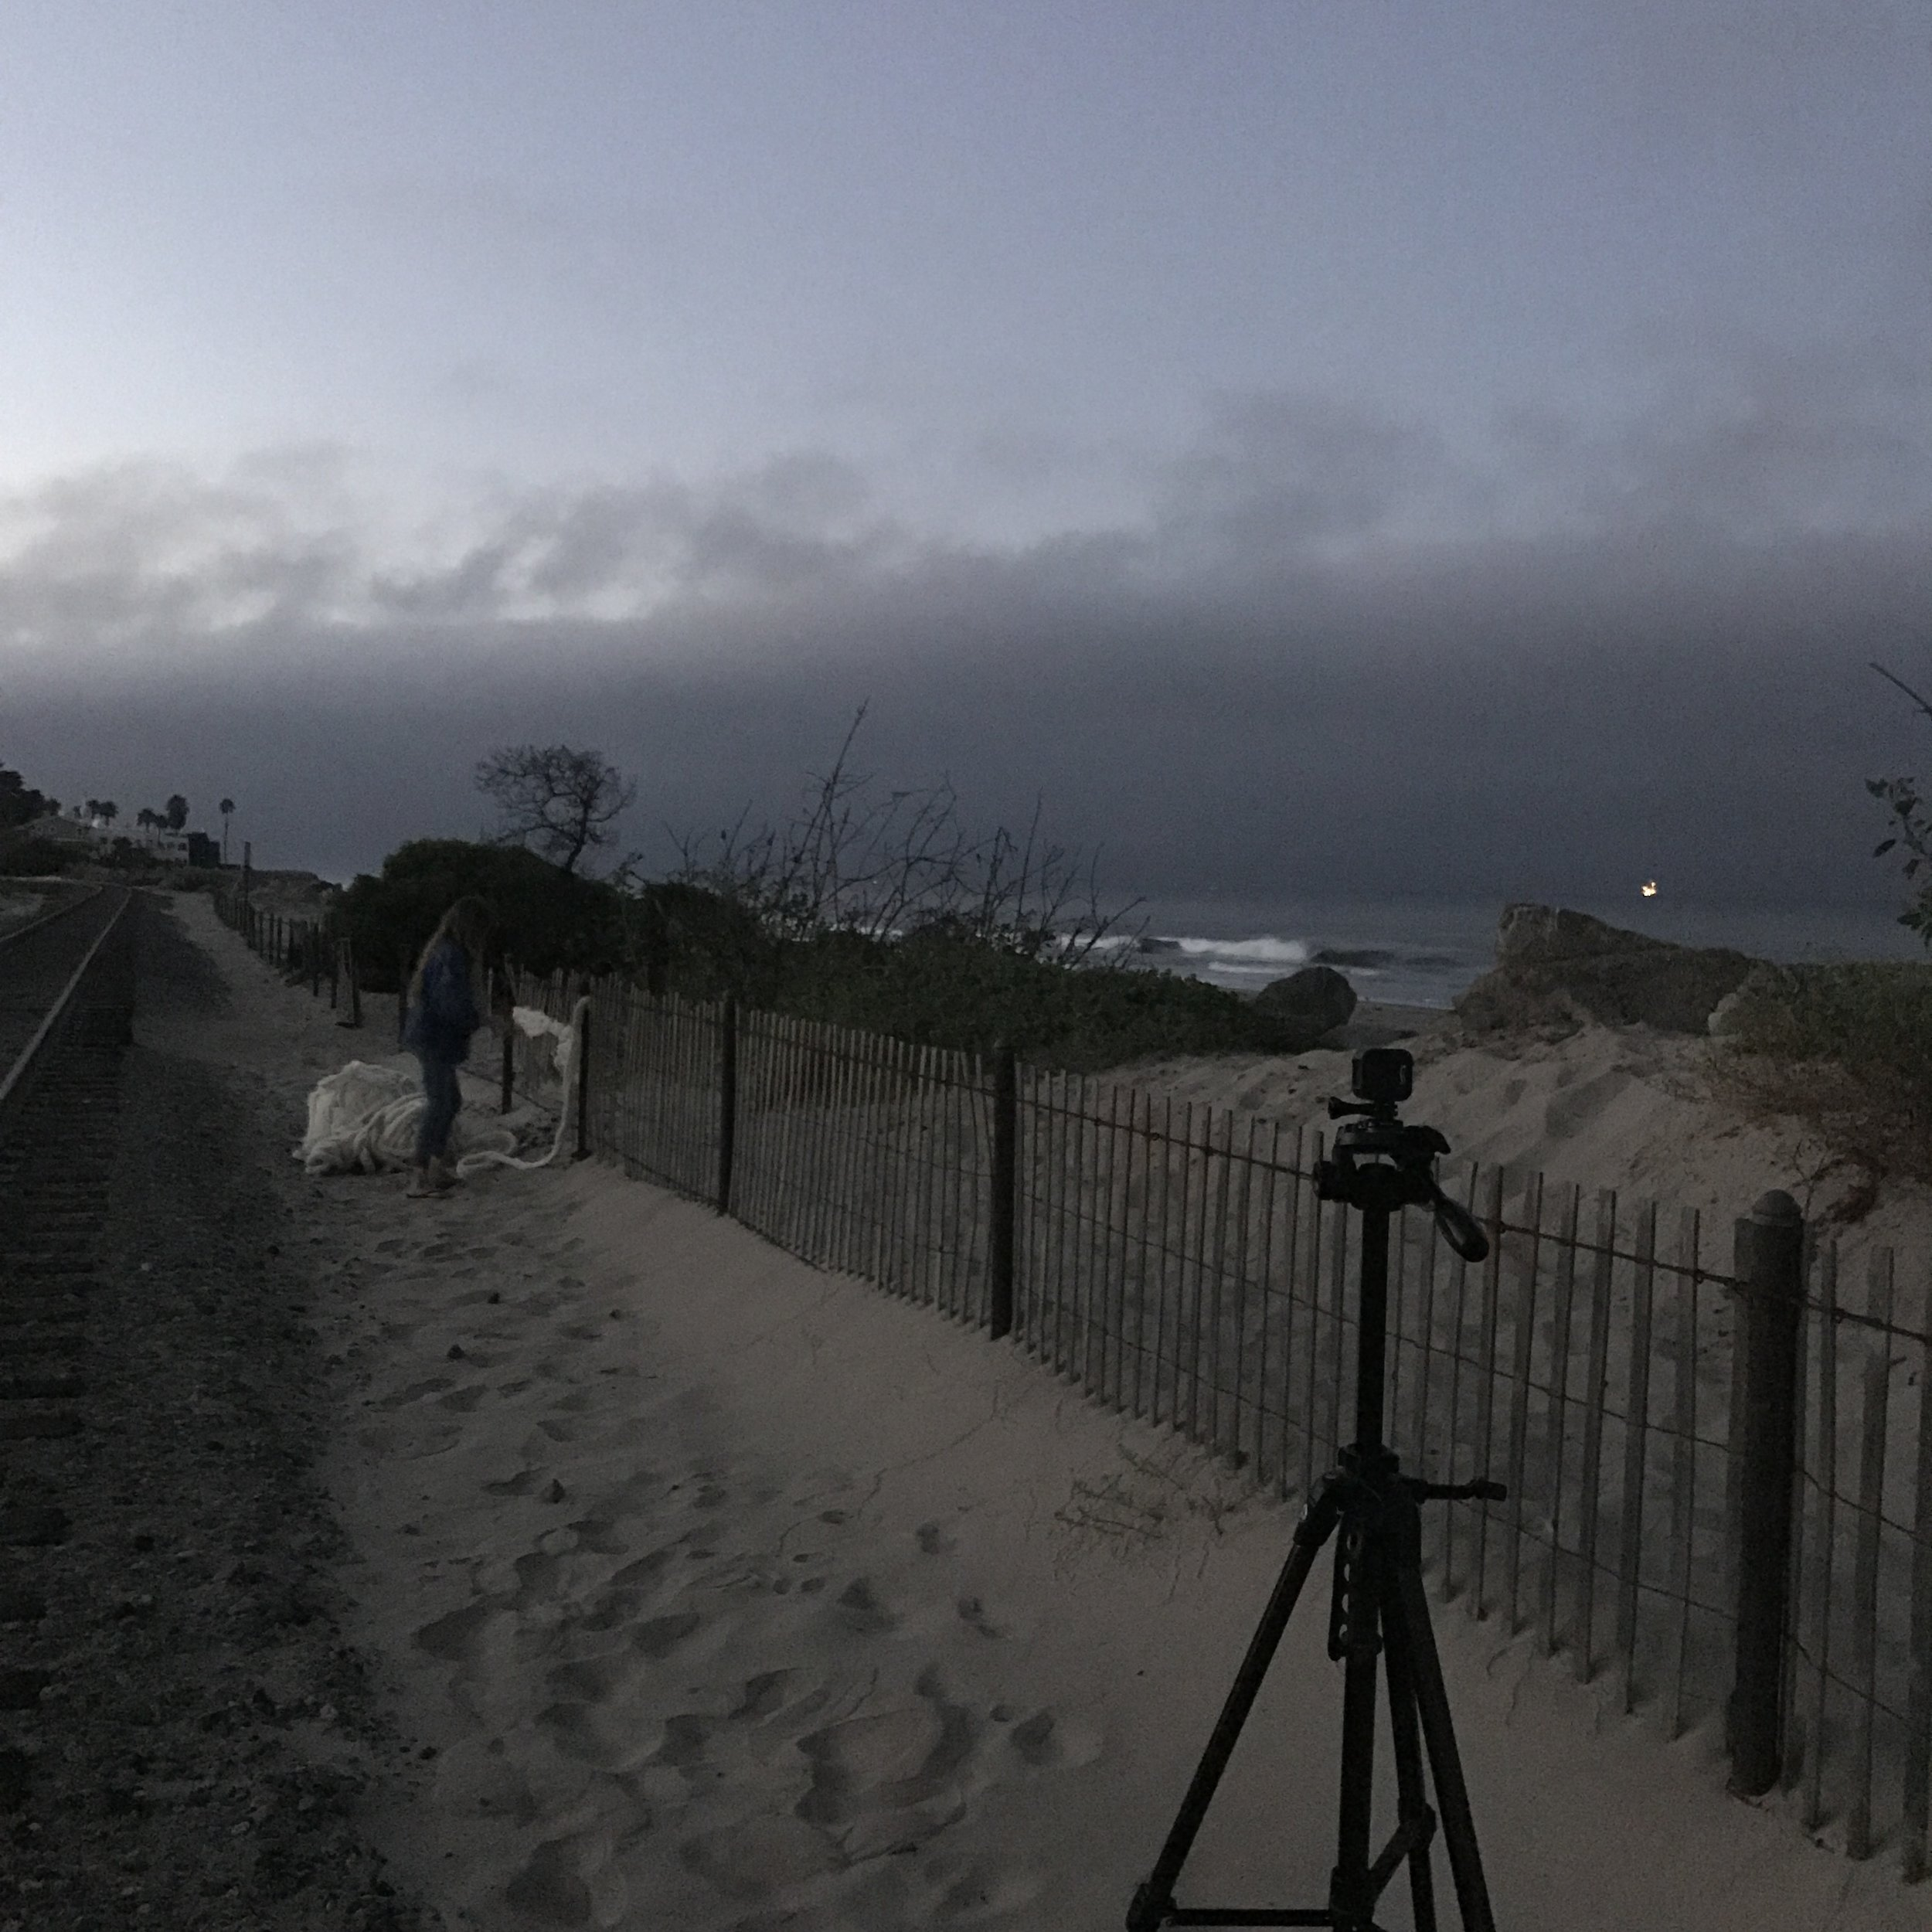 Filming on the Southern California coast in the early am.